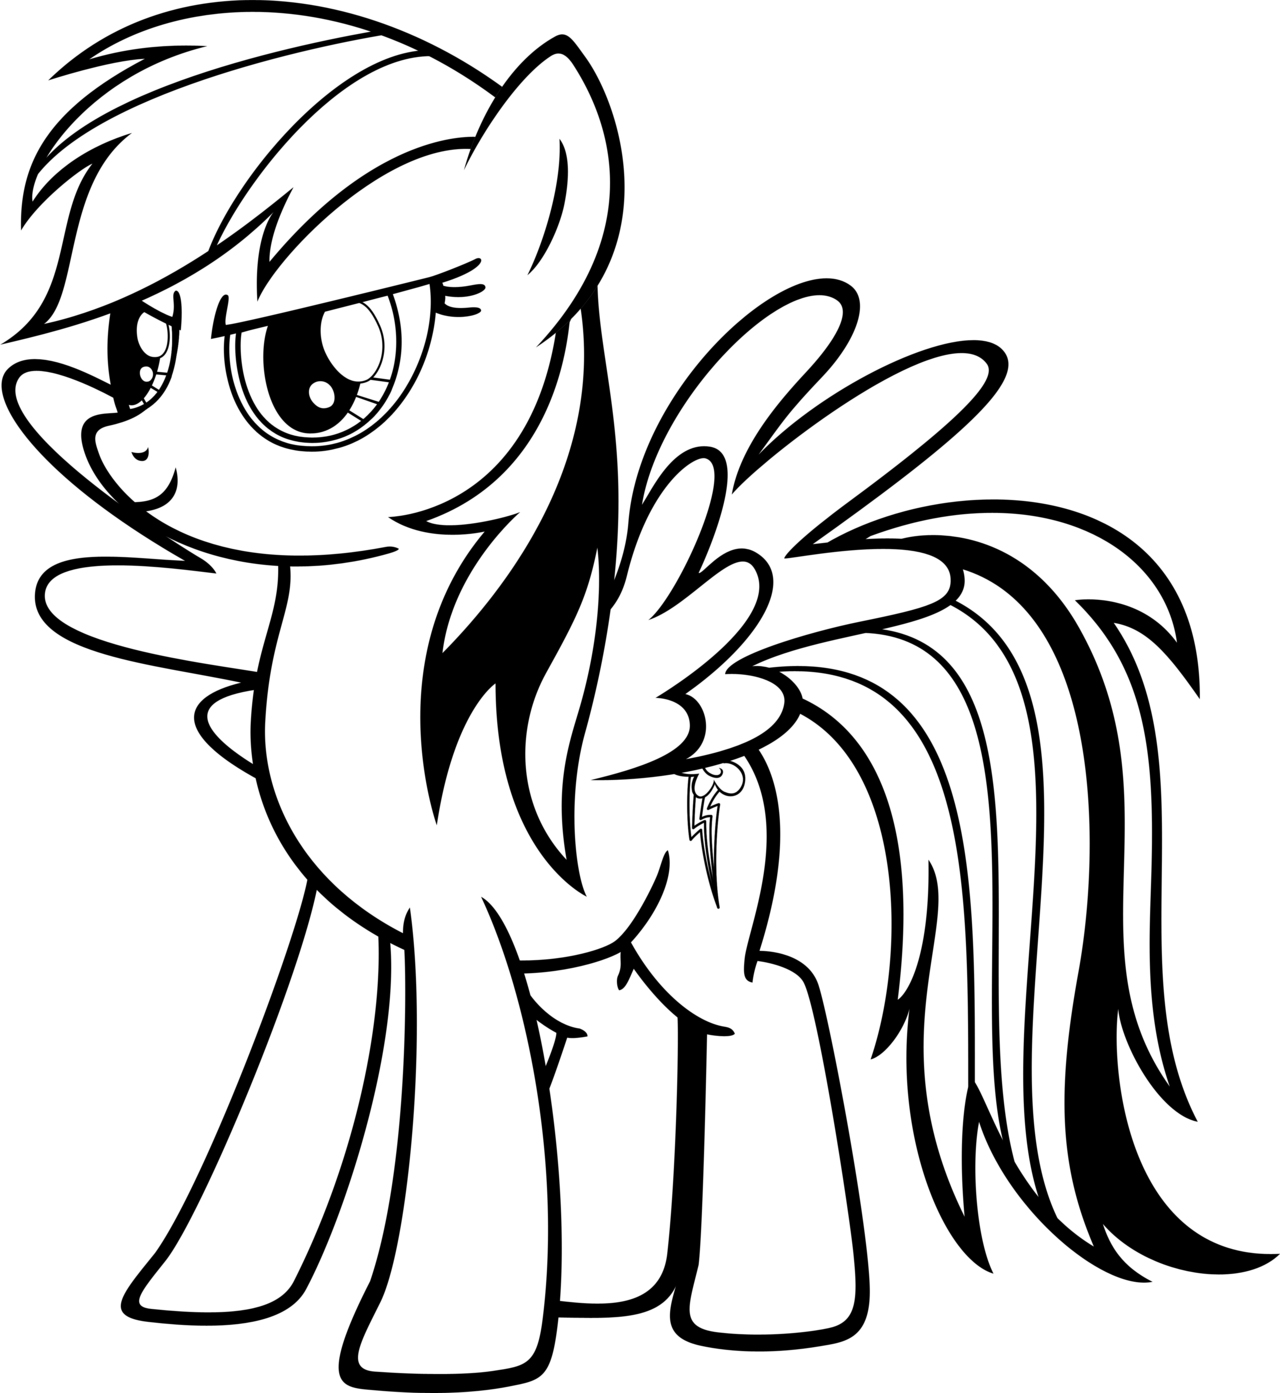 free printable rainbow coloring pages - rainbow dash coloring pages best coloring pages for kids